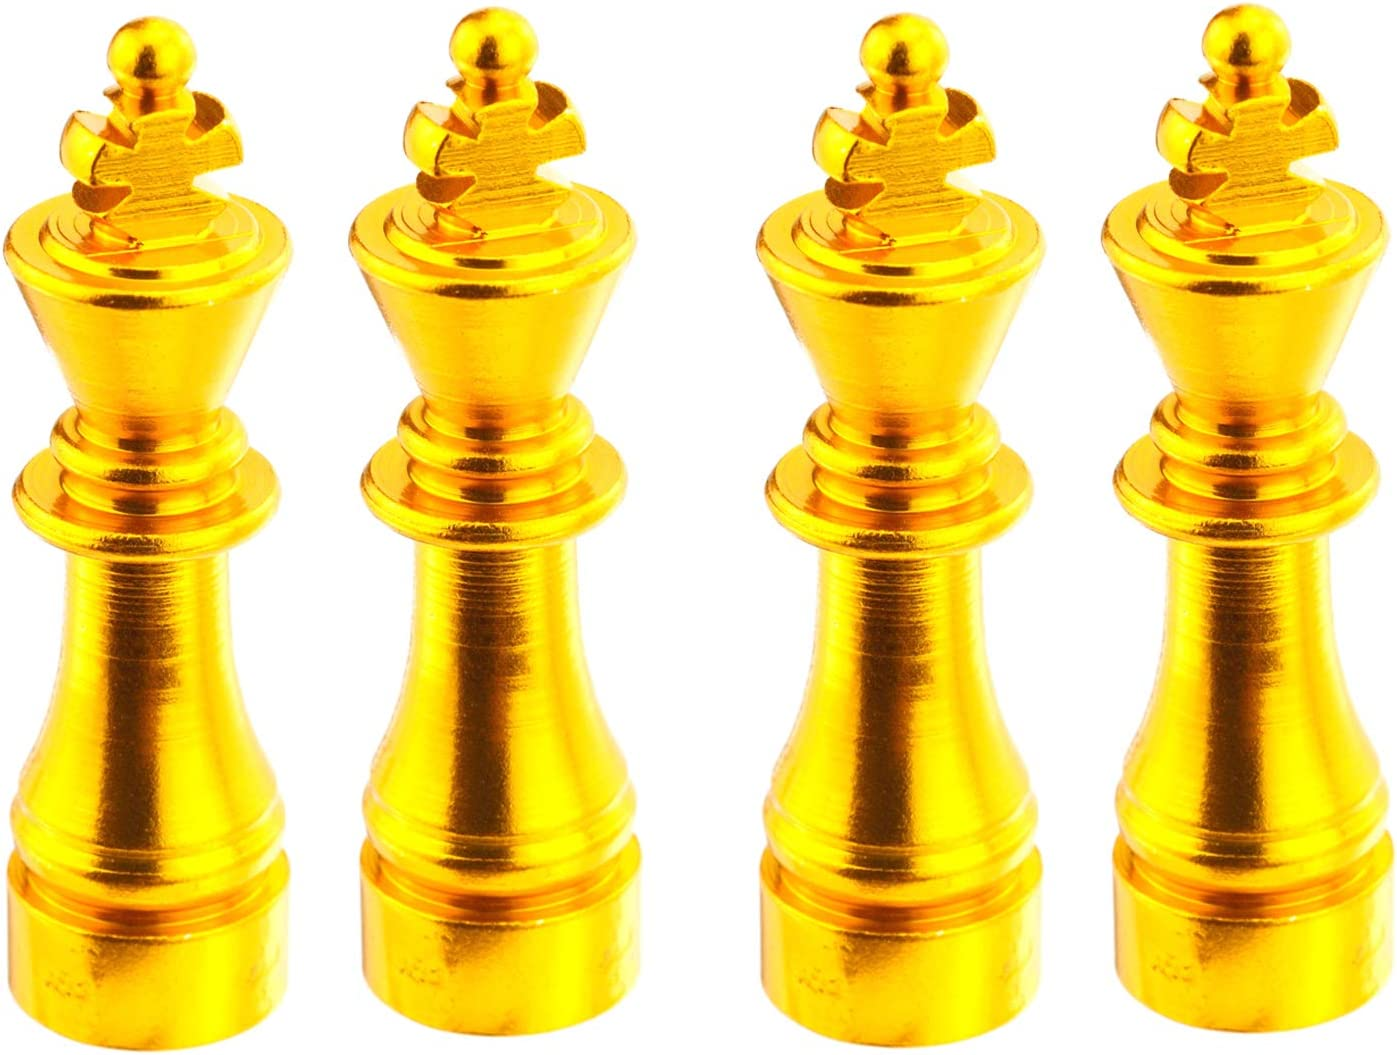 Lunsom Chess Valve Stem Caps Car Wheels Valves Hole Cover Accessories Fit Most Vehicle Motorcycle 4PCs Yellow